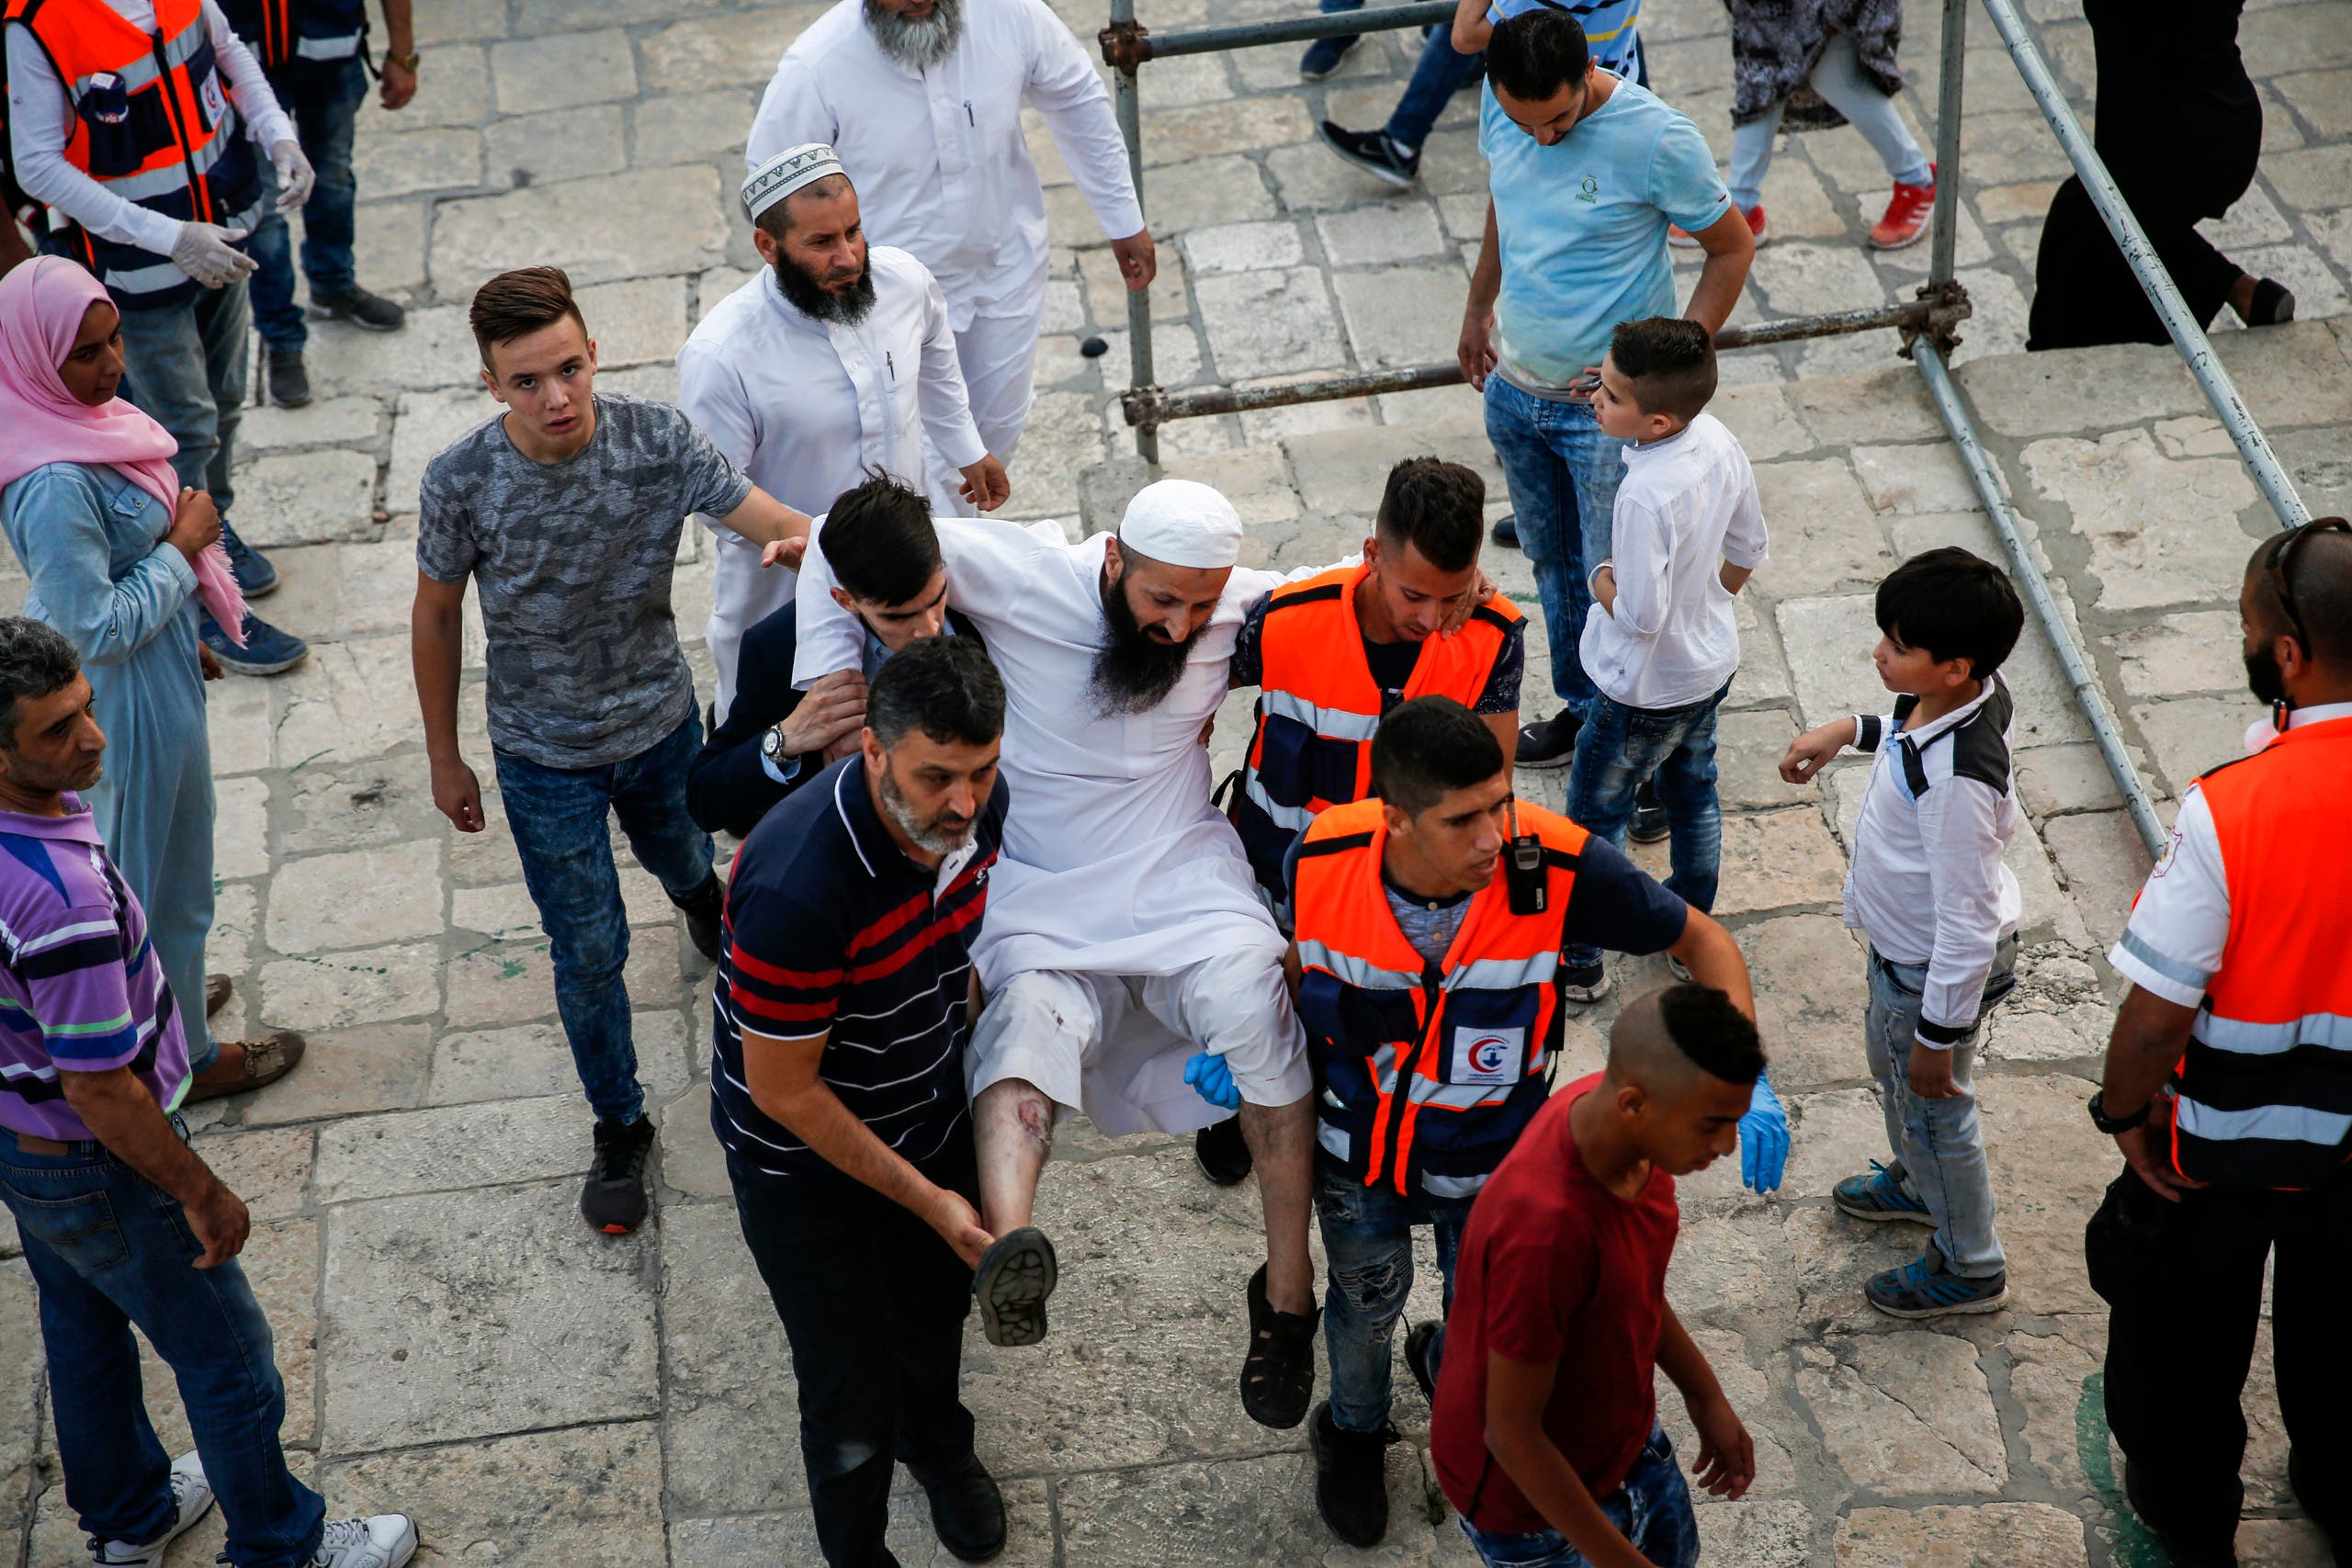 Palestinian paramedics carry an injured man after clashes broke out inside the Al-Aqsa mosques compound in Jerusalem's Old City on July 27, 2017. afp